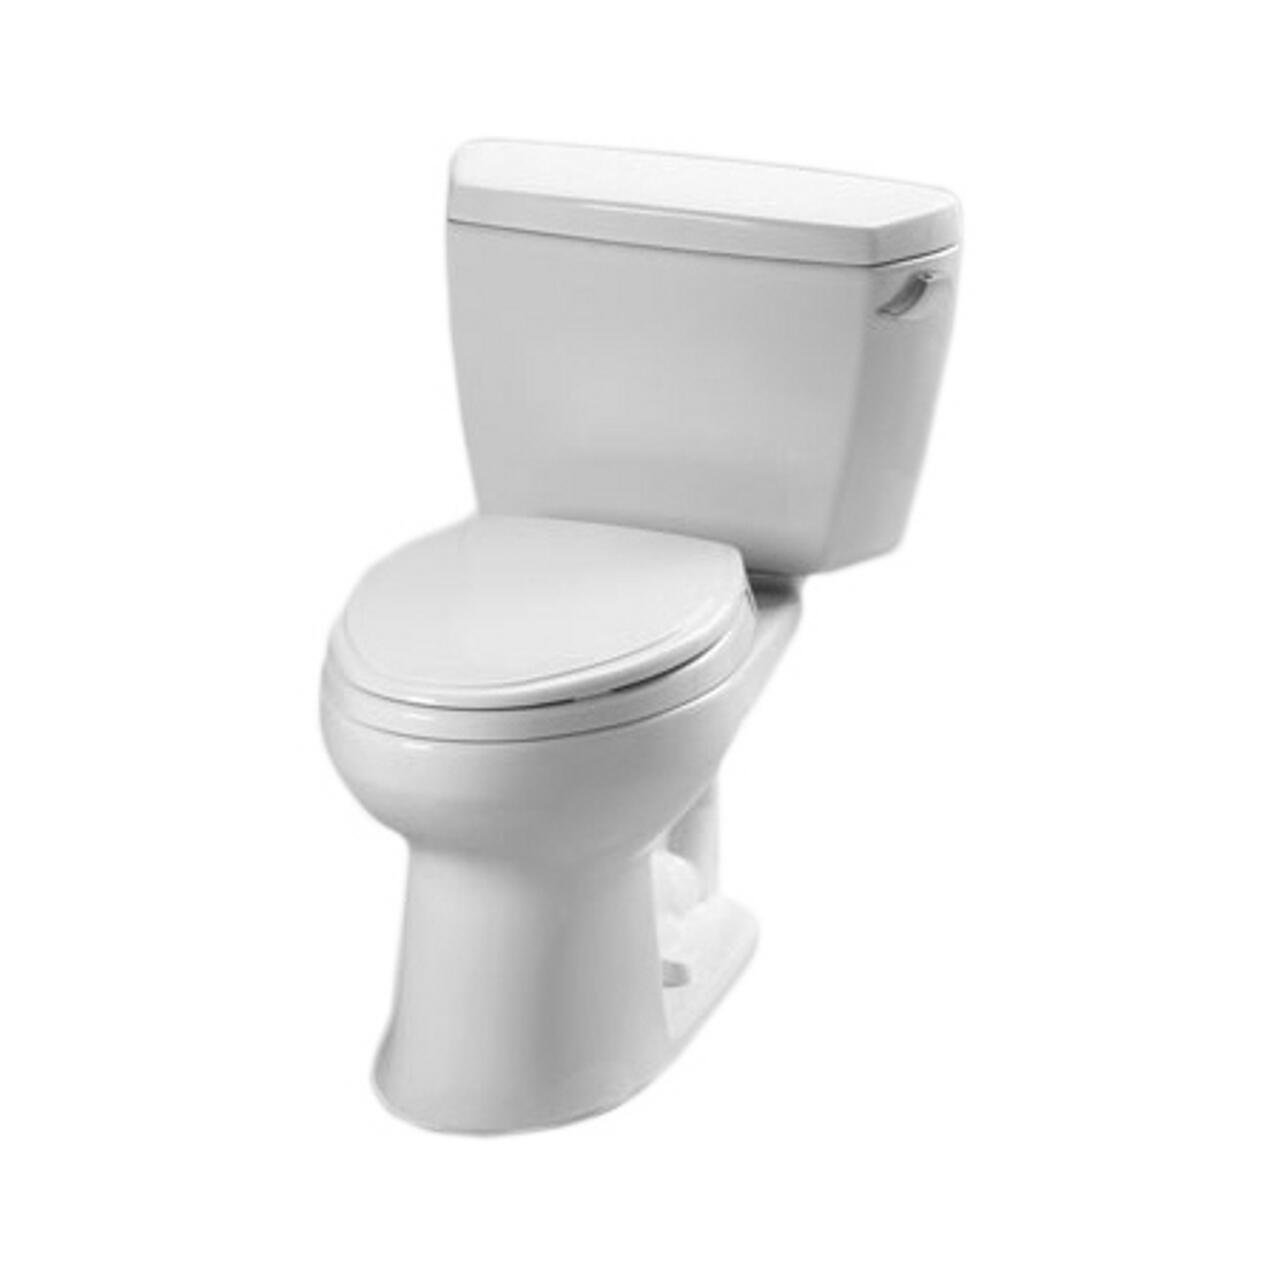 Toto CST744ELRBNo.01 Eco Drake Toilet-1.28-GPF-Ada with Right Hand Trip Lever and Boltdown Tank Lid, Cotton